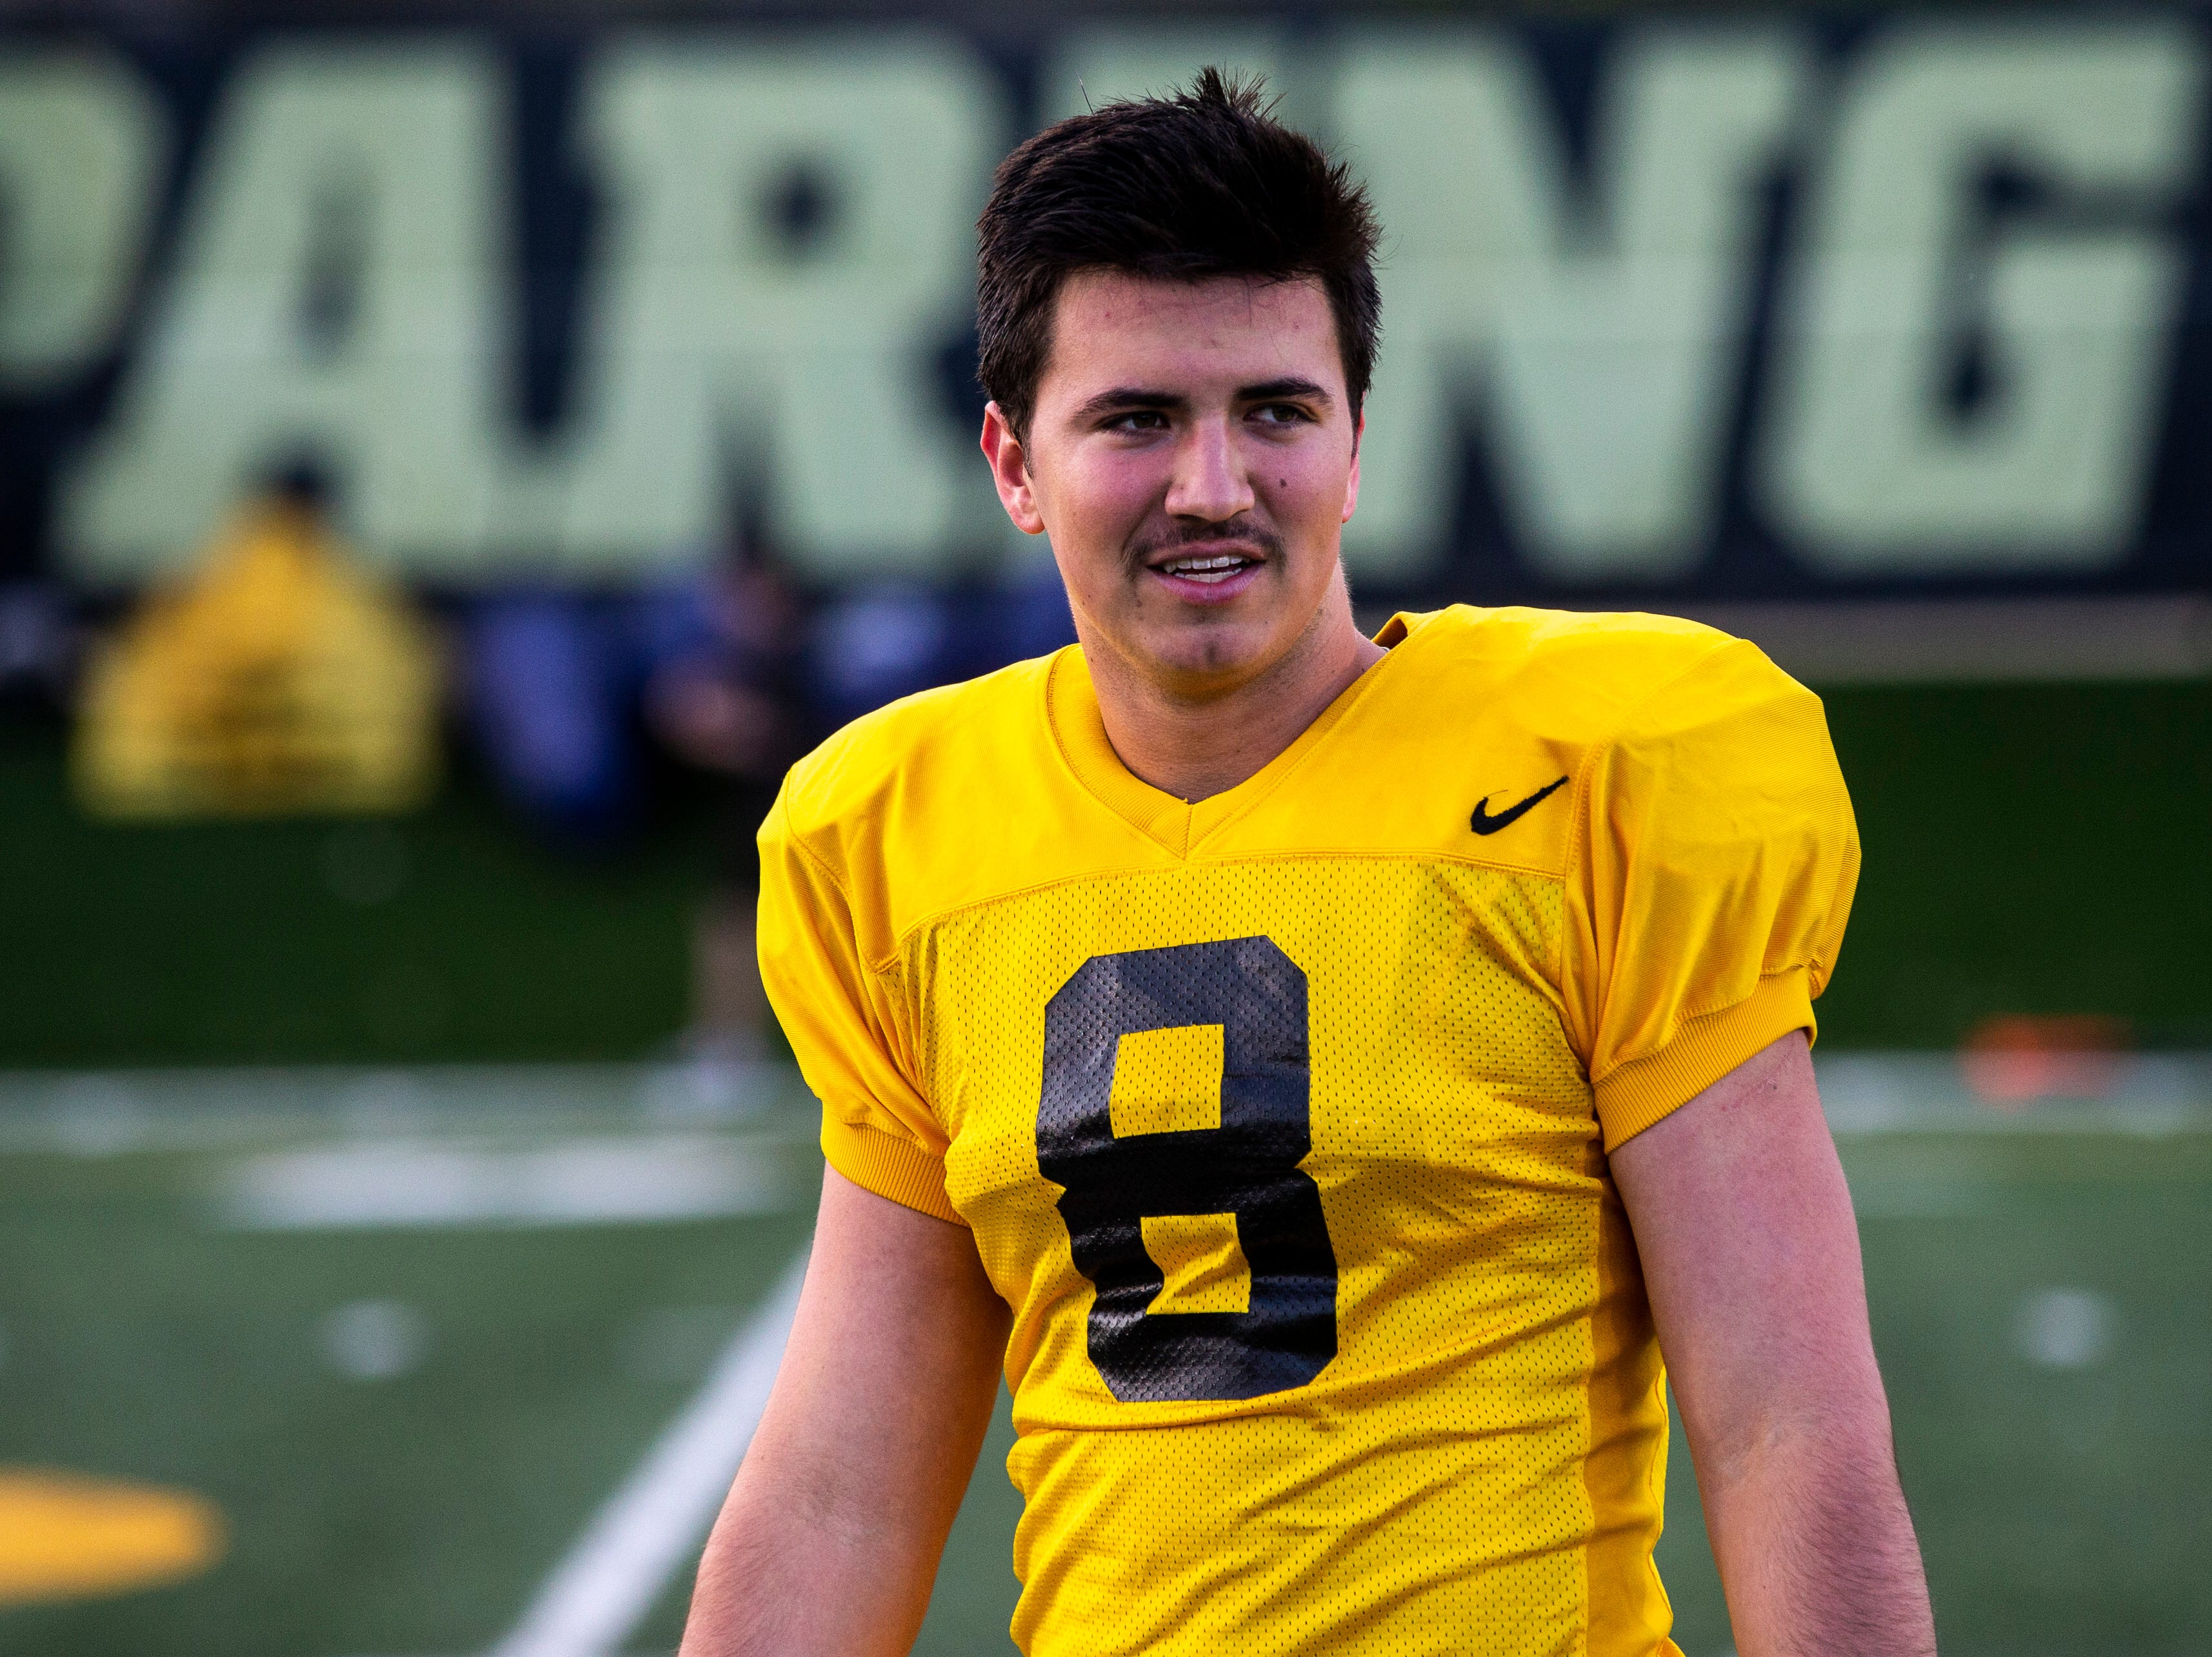 Iowa quarterback Alex Padilla (8) is pictured during the final spring football practice, Friday, April 26, 2019, at the University of Iowa outdoor practice facility in Iowa City, Iowa.